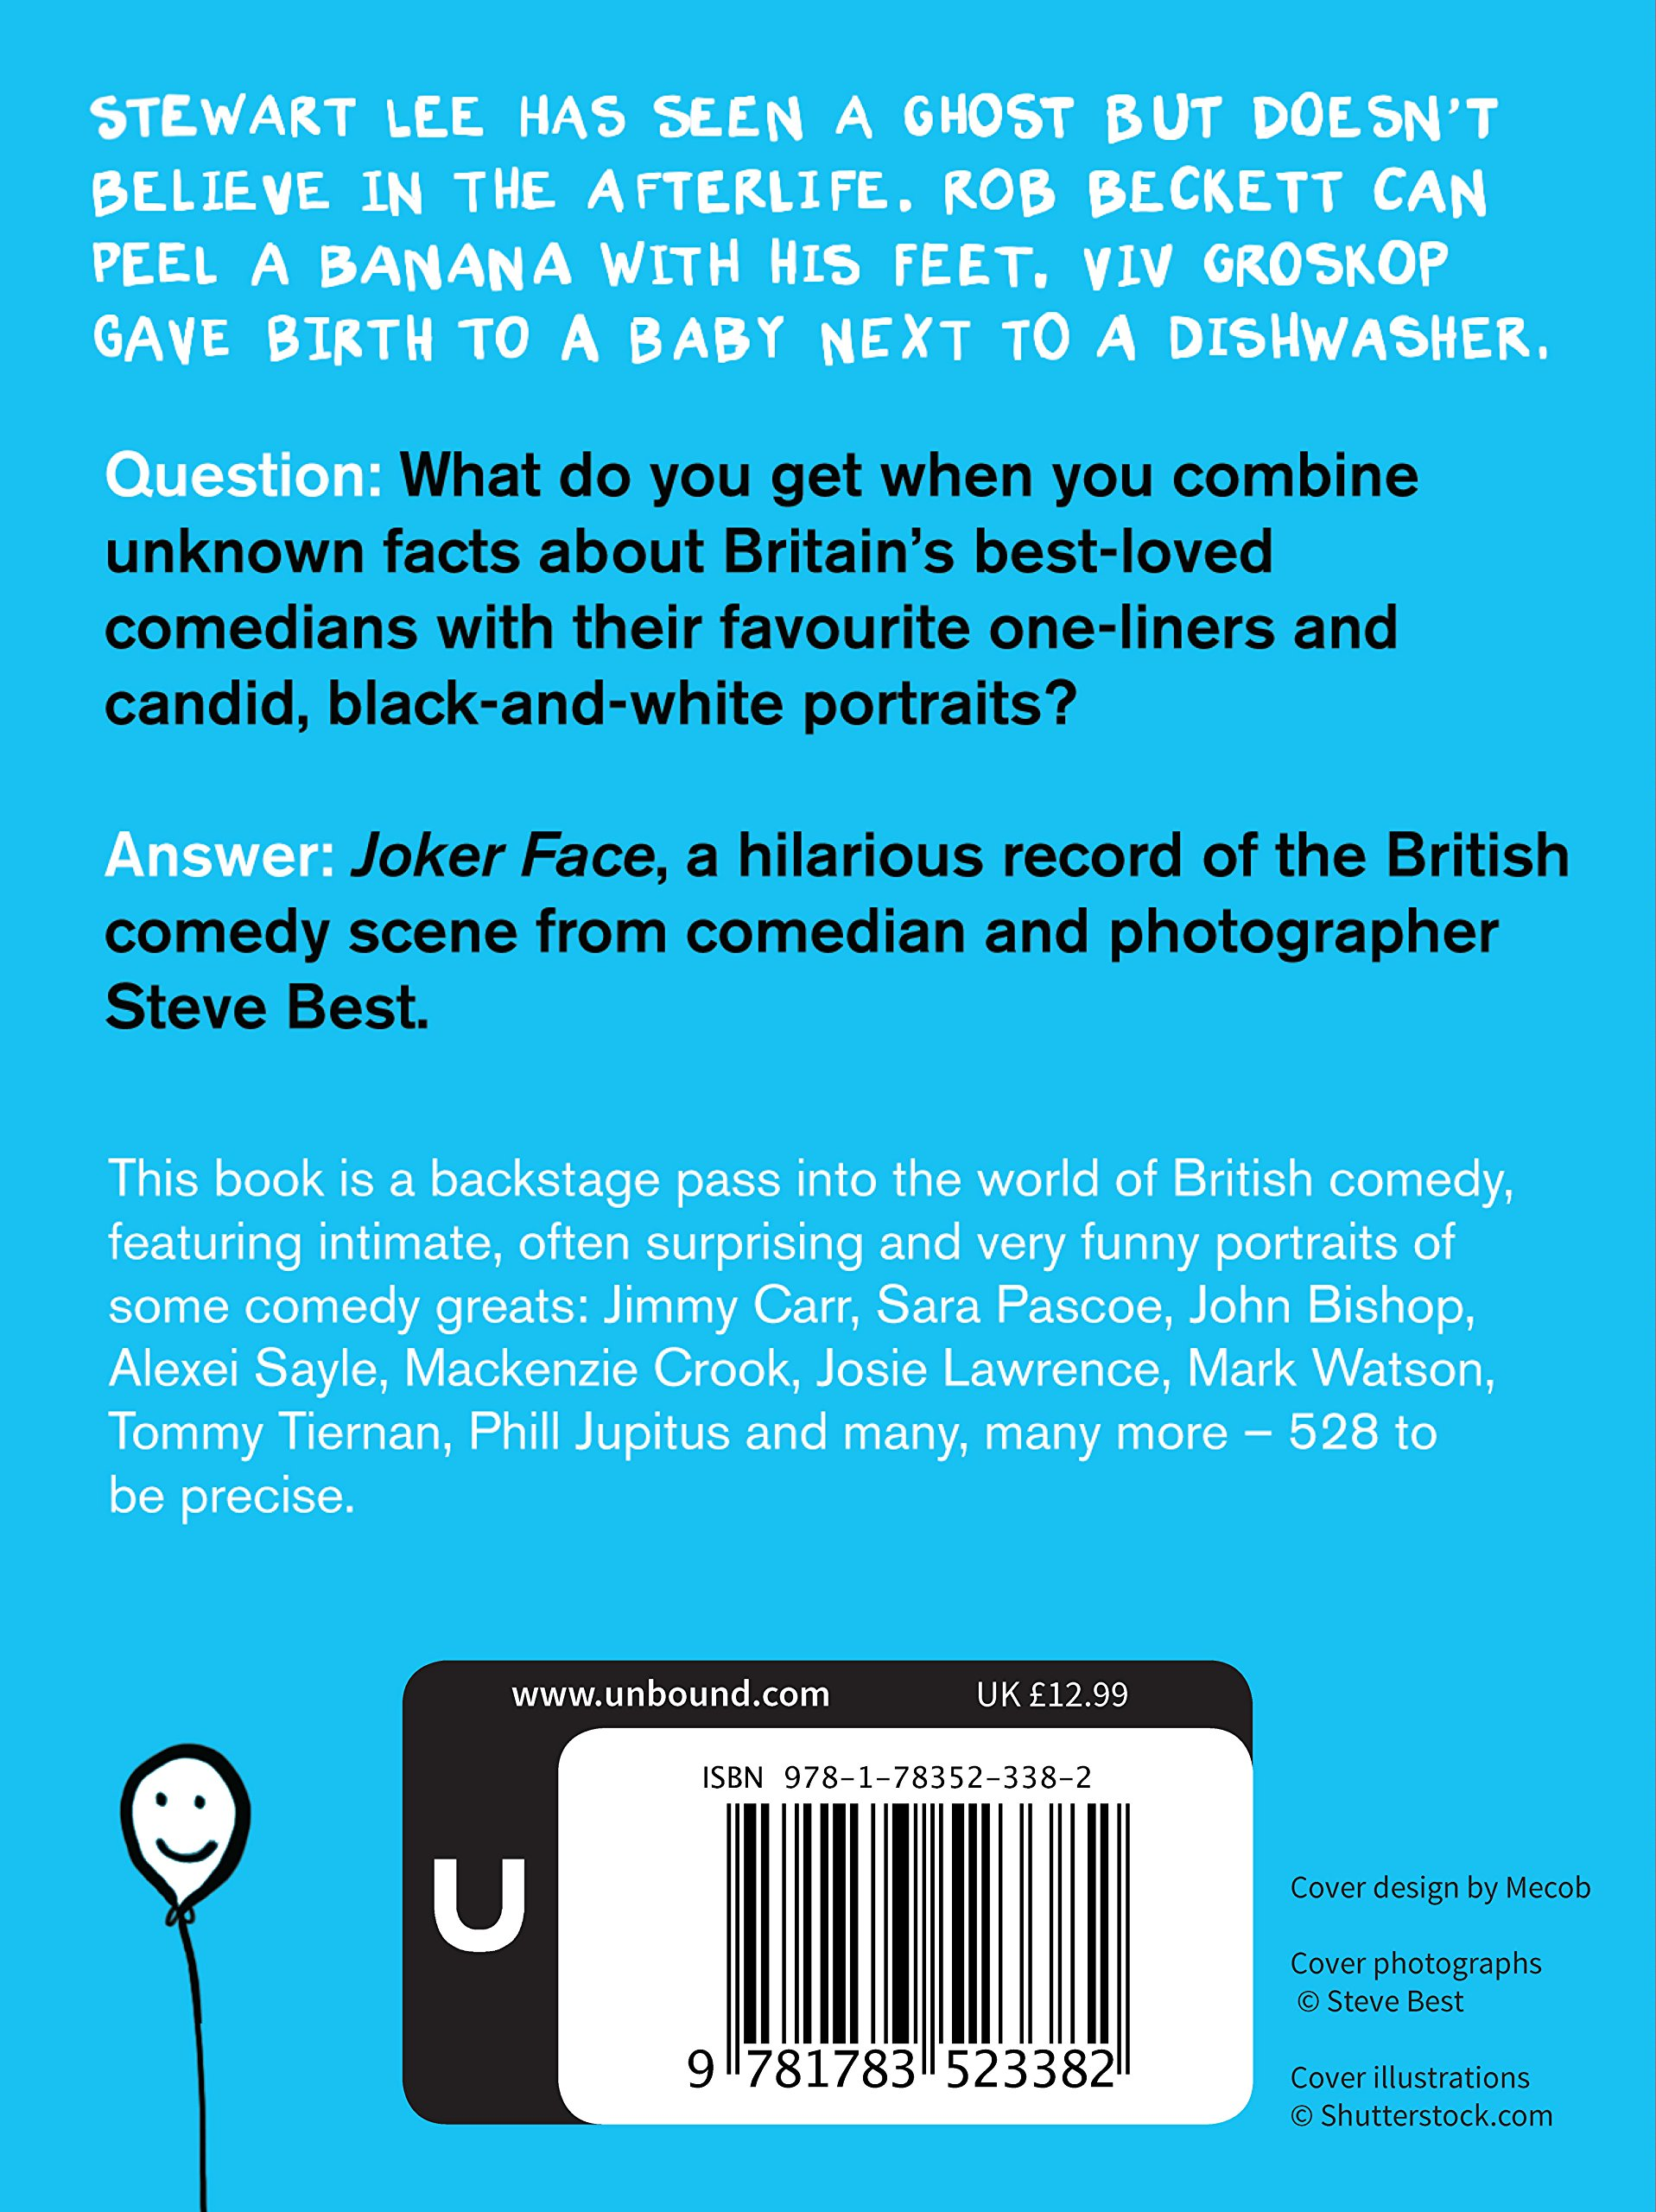 Joker face over 450 comedians share their best one liners amazon joker face over 450 comedians share their best one liners amazon steve best jimmy carr rob delaney stewart lee john bishop mackenzie crook ccuart Image collections